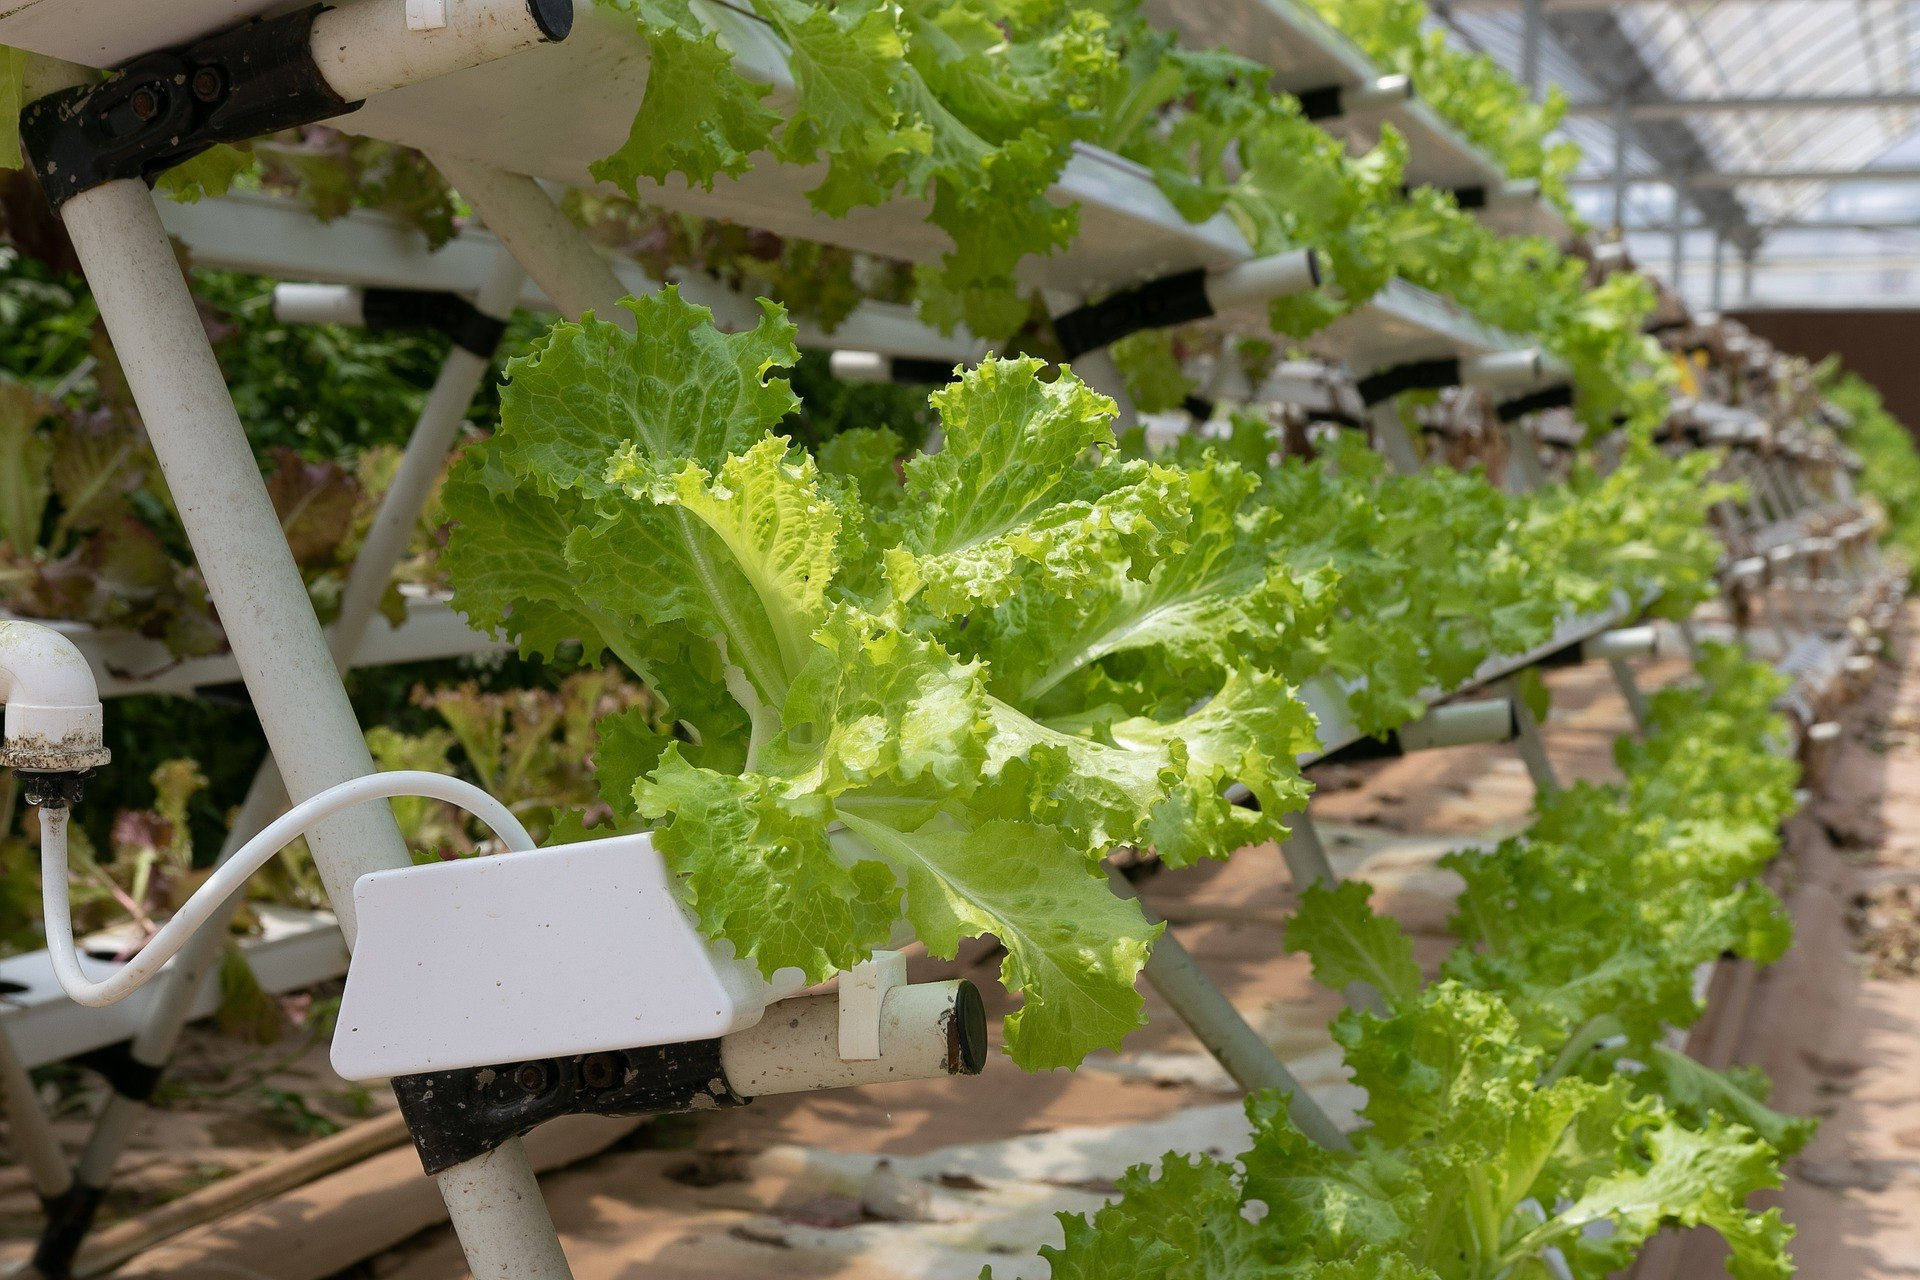 10 Most Profitable Small Businesses - Start vertical farming